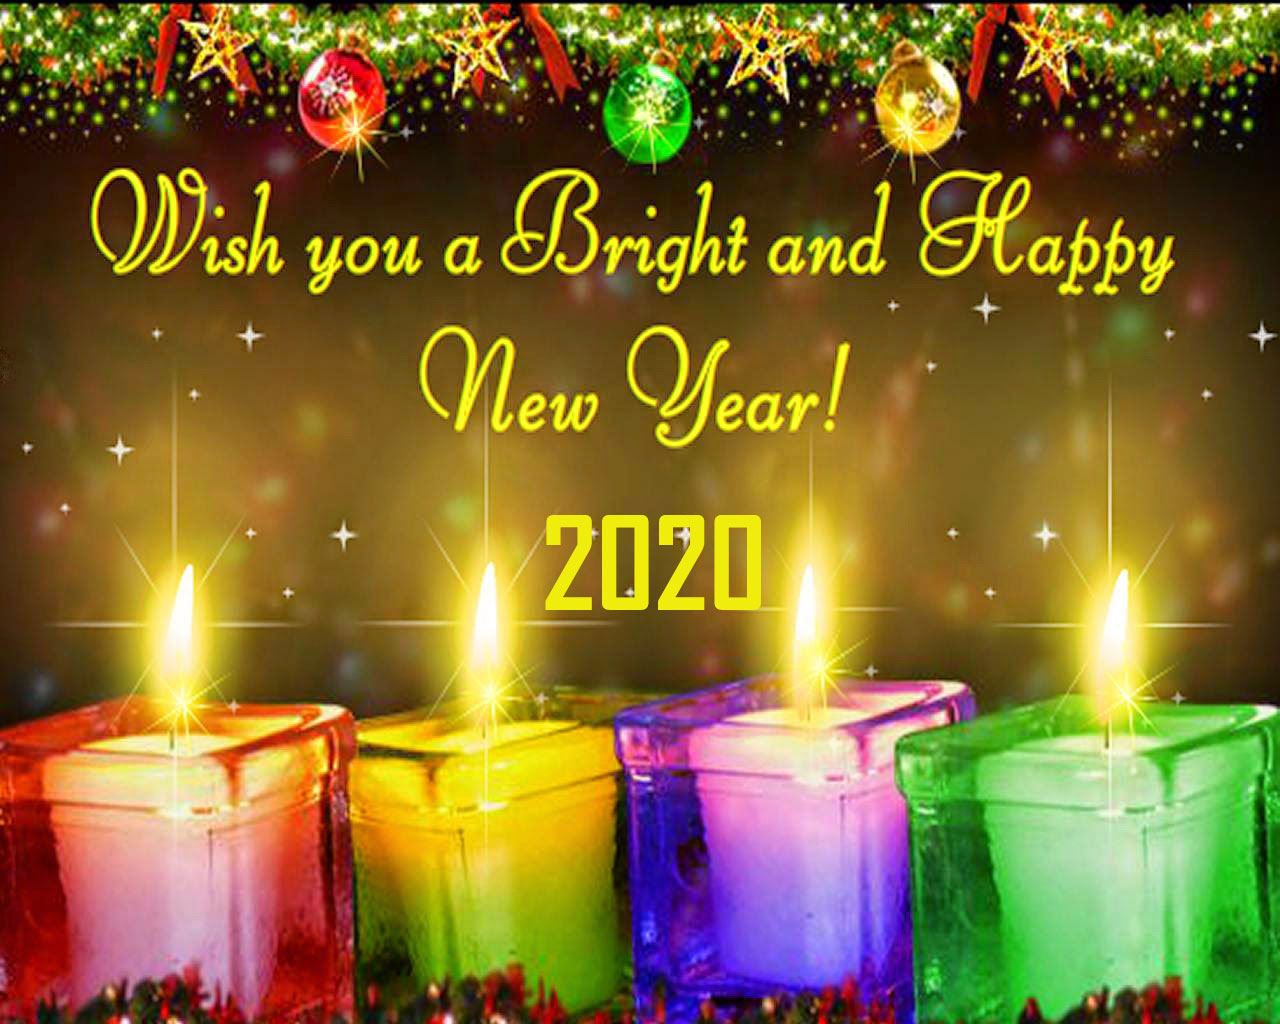 Happy New Year 2020 Wishes Greetings Messages